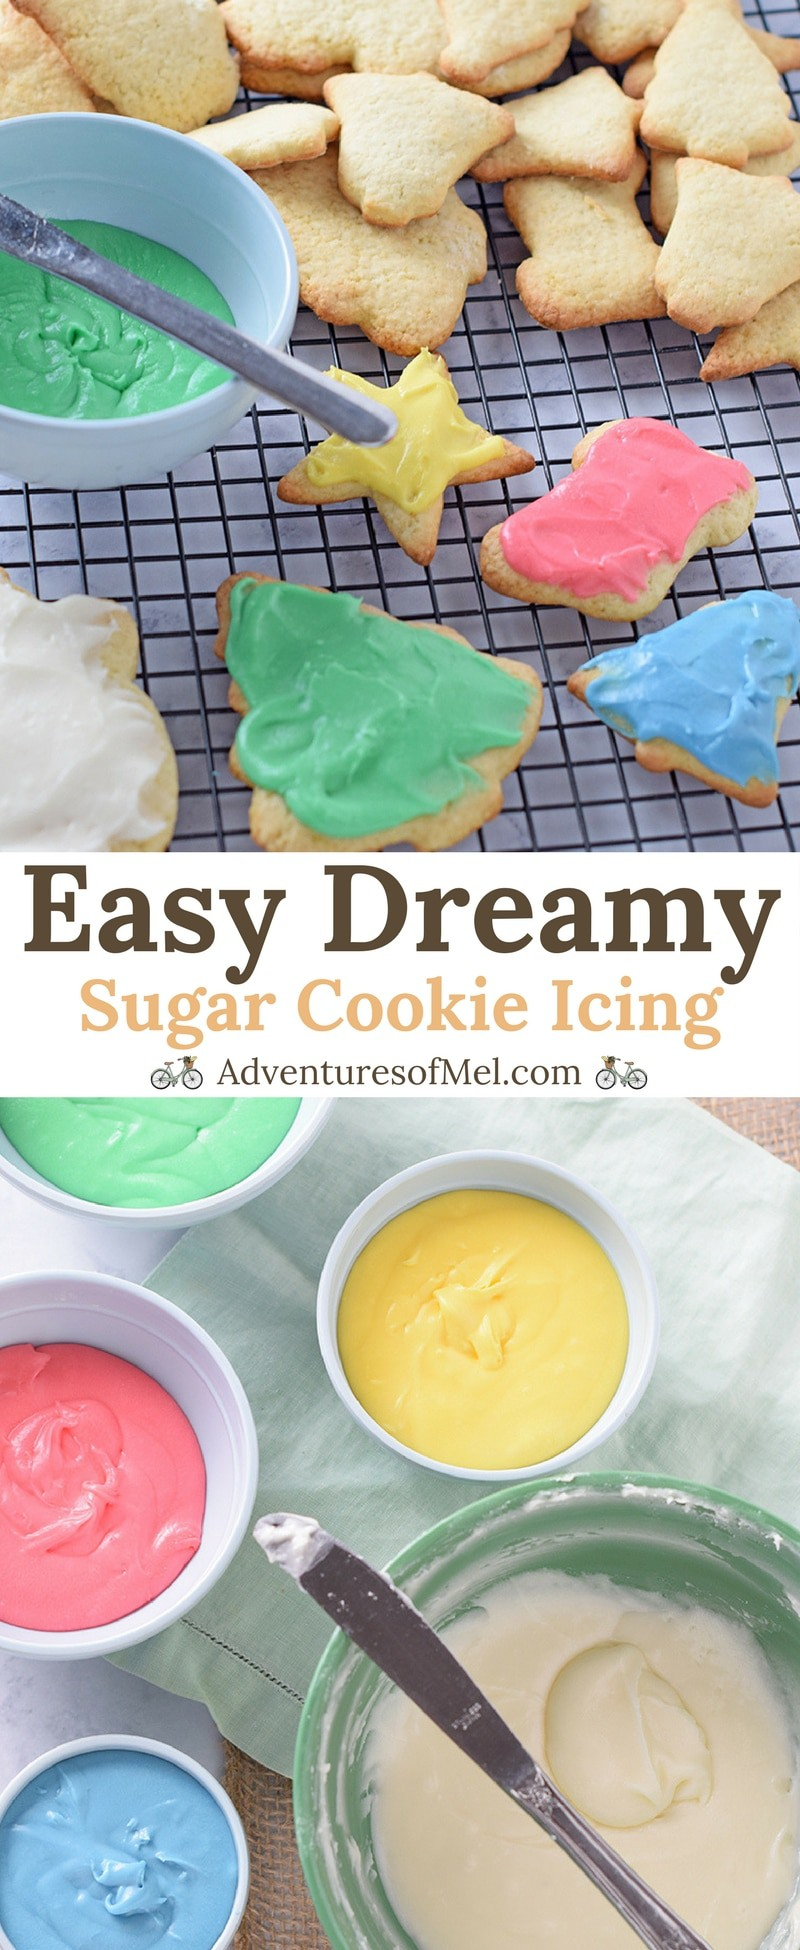 Easy Sugar Cookie Icing, made with powdered sugar and a flavorful secret ingredient. So creamy delicious, my favorite recipe for cookie decorating.